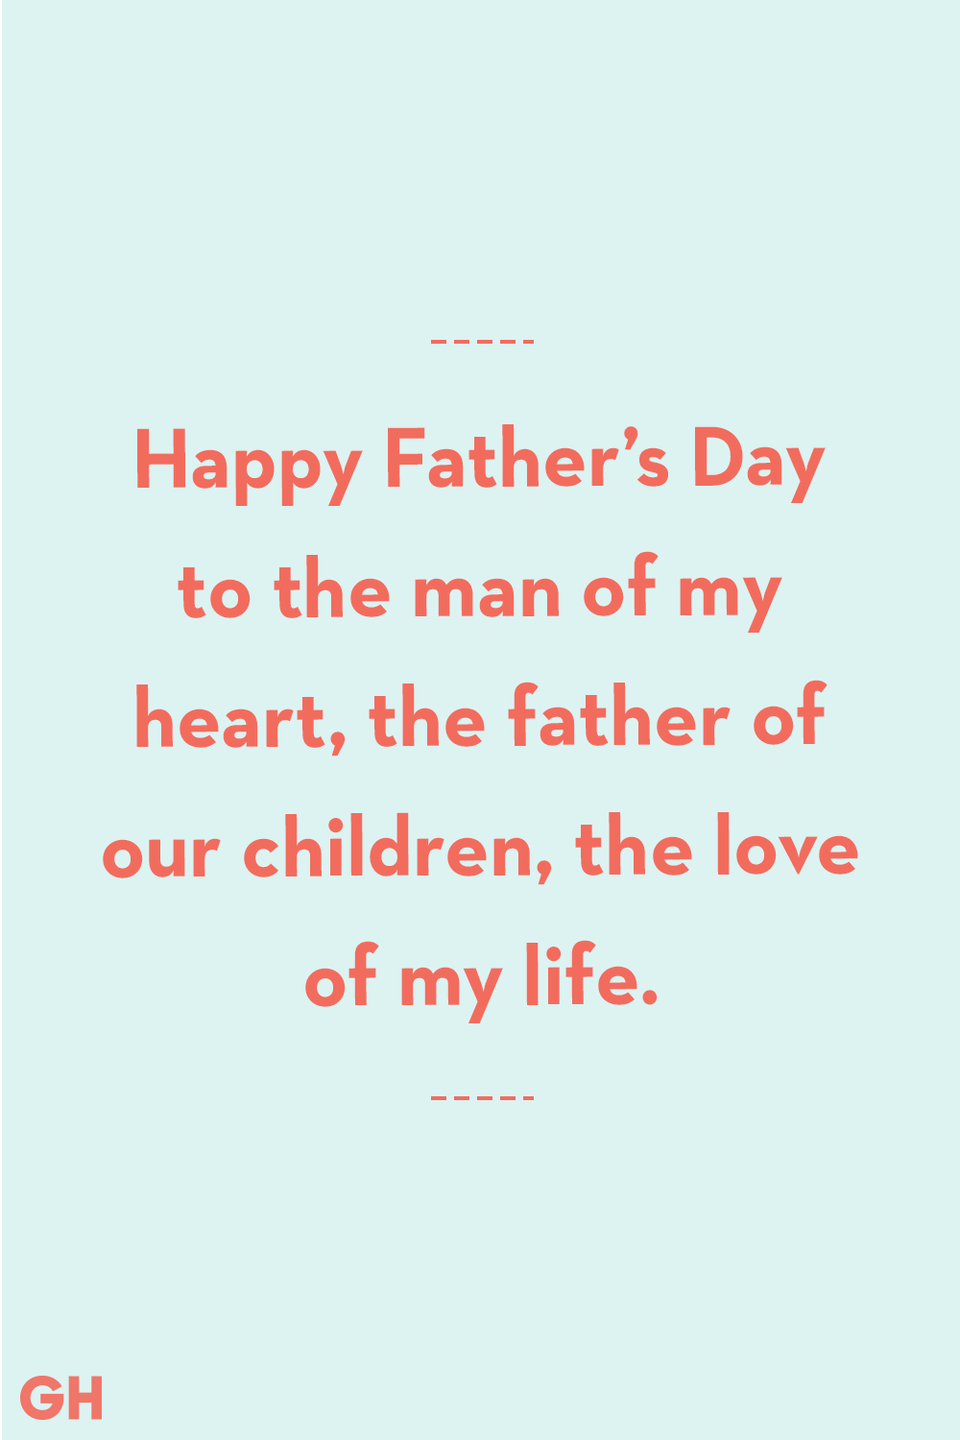 <p>Happy Father's Day to the man of my heart, the father of our children, the love of my life.</p>